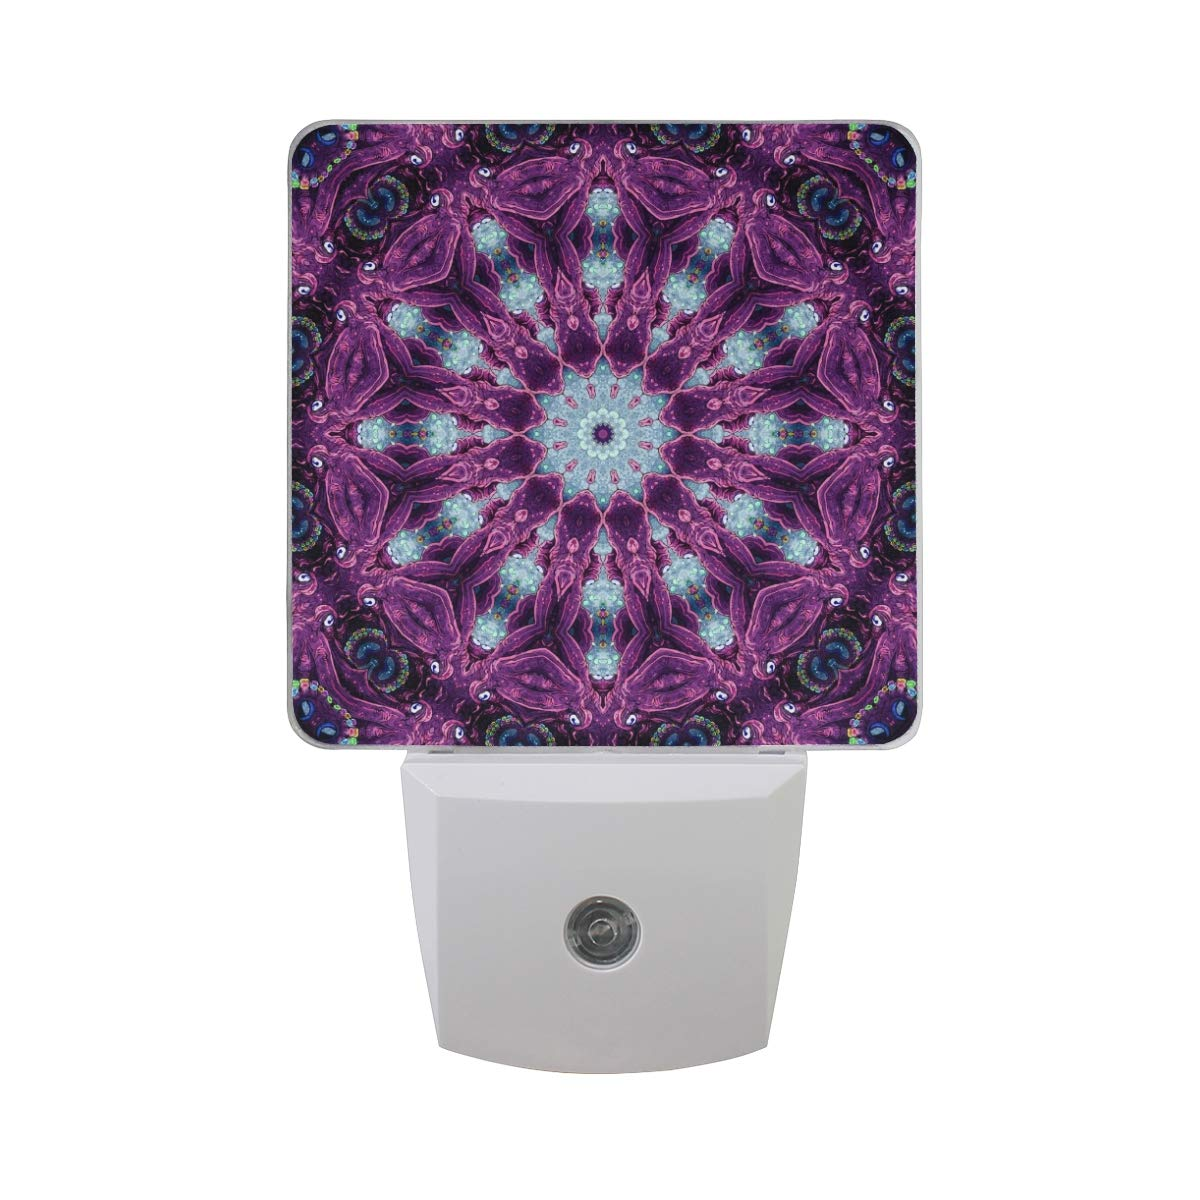 LED Night Light Psychedelic and Trippy Designs Made Auto Senor Dusk to Dawn Night Light Decorative Plug in for Kids Baby Girls Boys Adults Room Set of 2